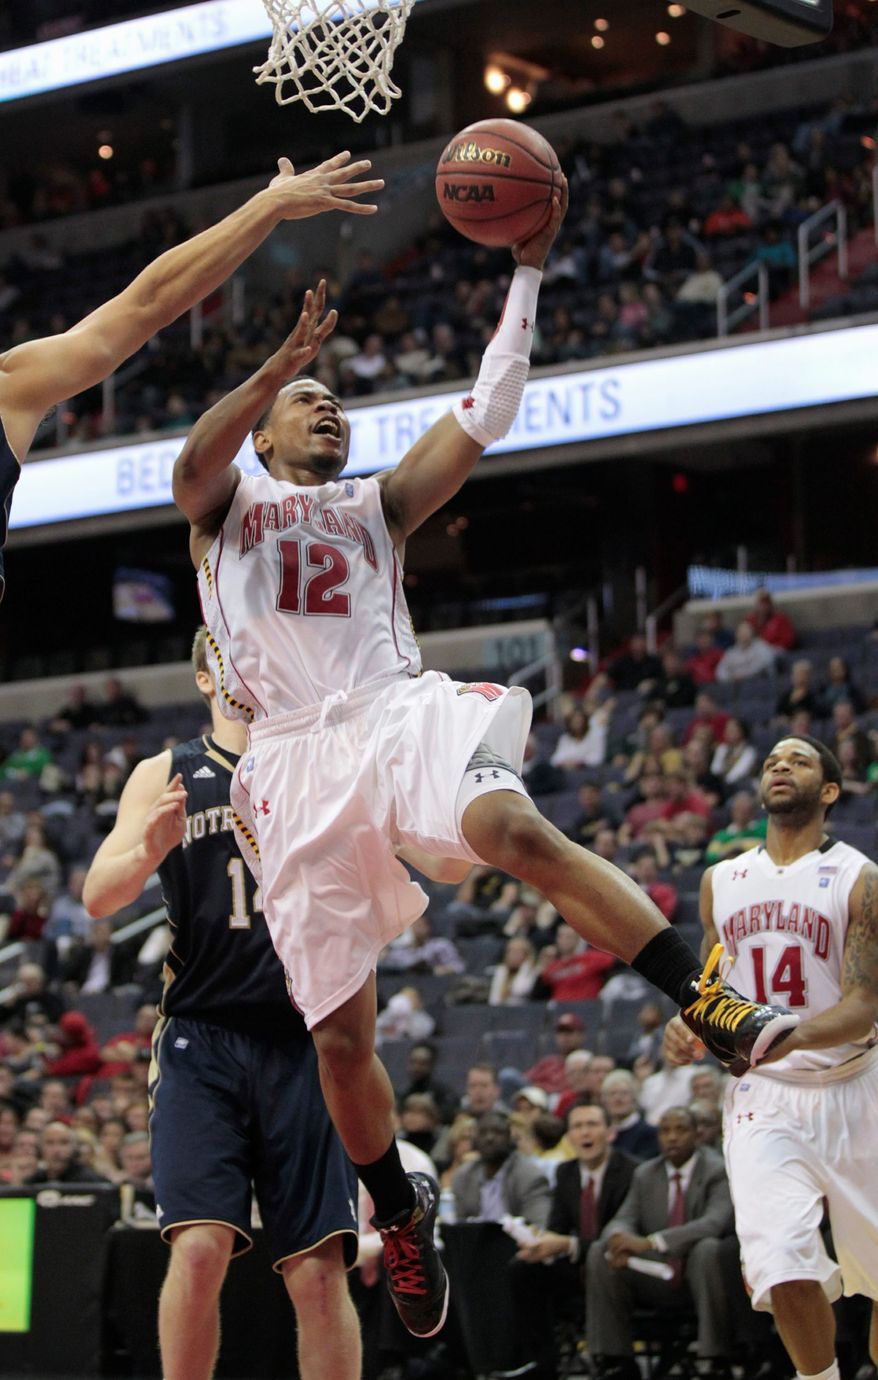 Maryland's Terrell Stoglin shoots the ball during first half against Notre Dame at the BB&T Classic in Washington, Sunday, Dec. 4, 2011. Maryland won 78-71, and Stoglin had 31 points. (AP Photo/Luis M. Alvarez)